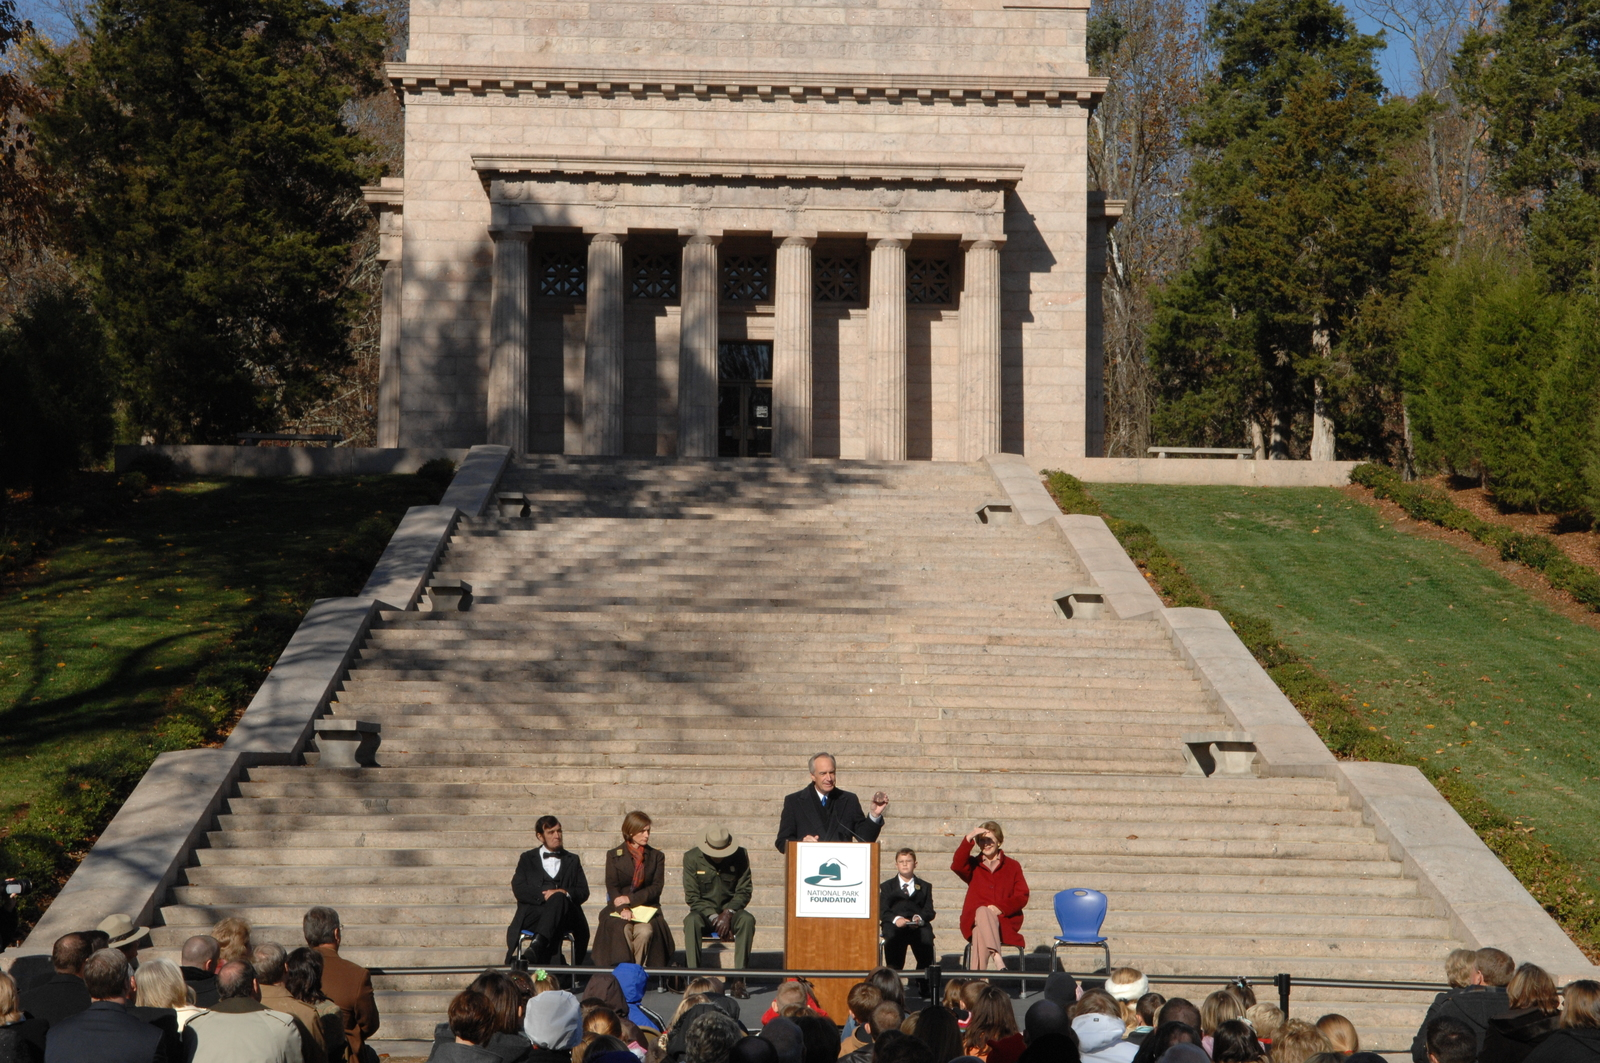 [Assignment: 48-DPA-11-18-08_SOI_K_FLOTUS] Visit of Secretary Dirk Kempthorne to the Abraham Lincoln Birthplace National Historic Site in Hodgenville, Kentucky, where he joined First Lady Laura Bush, [Historic Site Superintendent Keith Pruitt, and Libby O'Connell, Chief Historian of A and E Television's History Channel, for tours, remarks, interactions with National Park Service staff and visitors] [48-DPA-11-18-08_SOI_K_FLOTUS_DOI_3846.JPG]